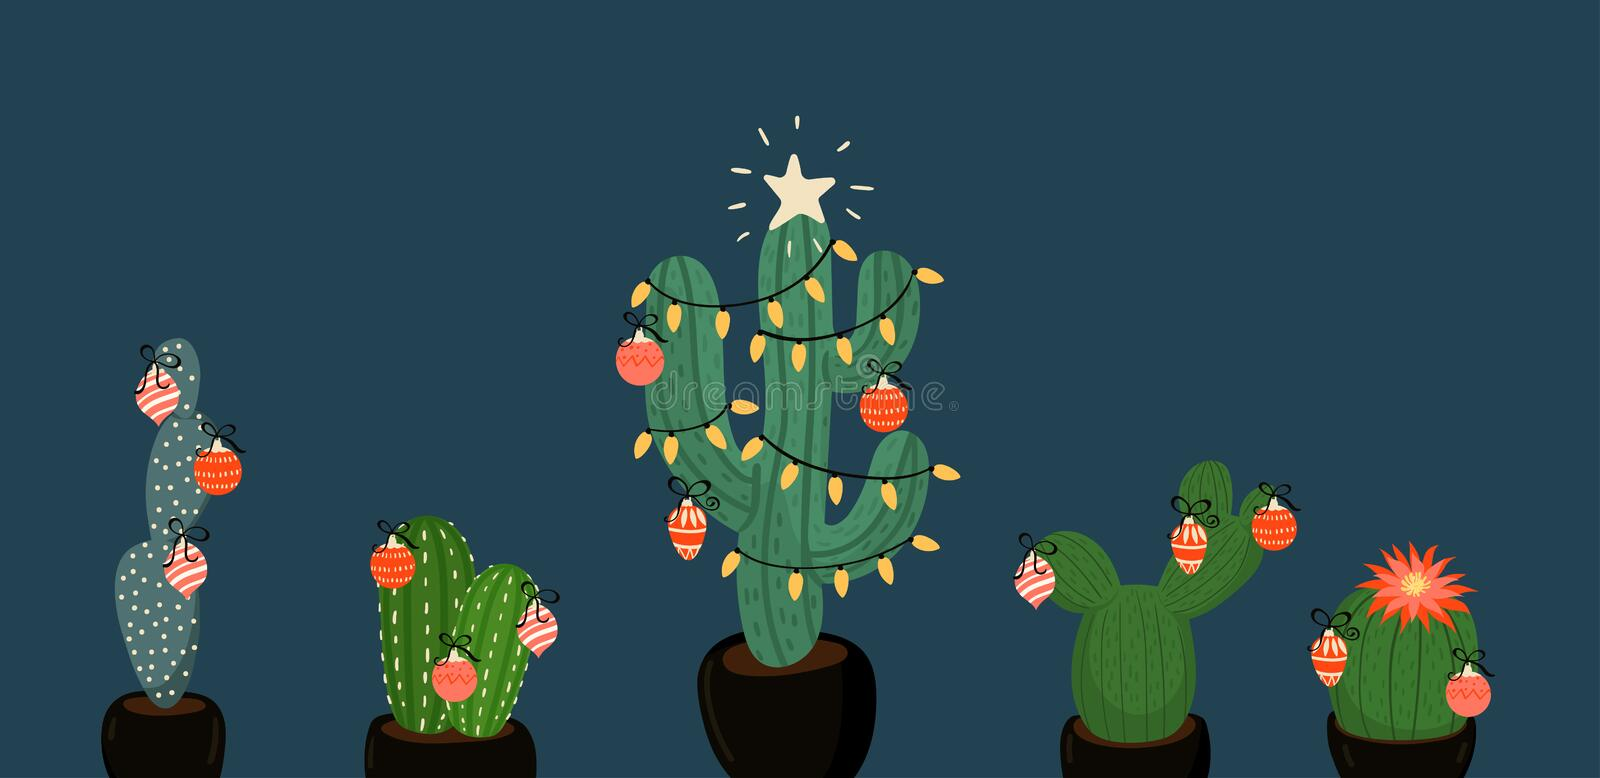 Banner with Christmas decorated cacti. vector image. Banner with Christmas decorated cacti. Vector graphics stock illustration